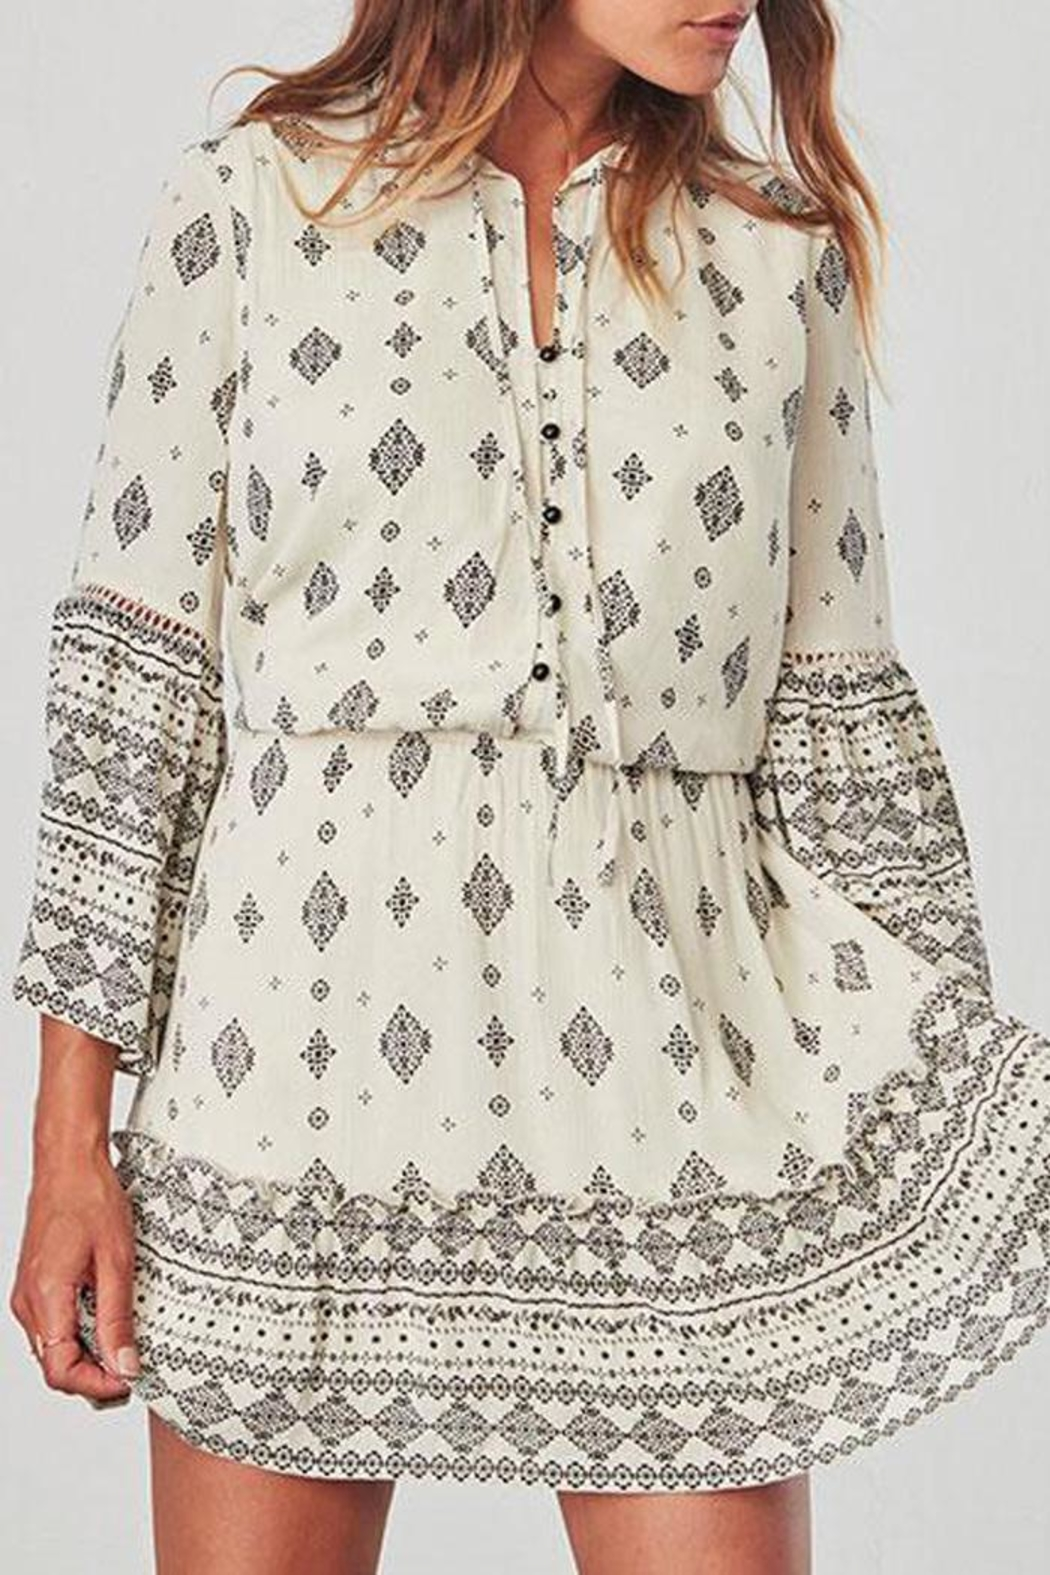 Jack by BB Dakota Andee Patterned Dress - Front Full Image